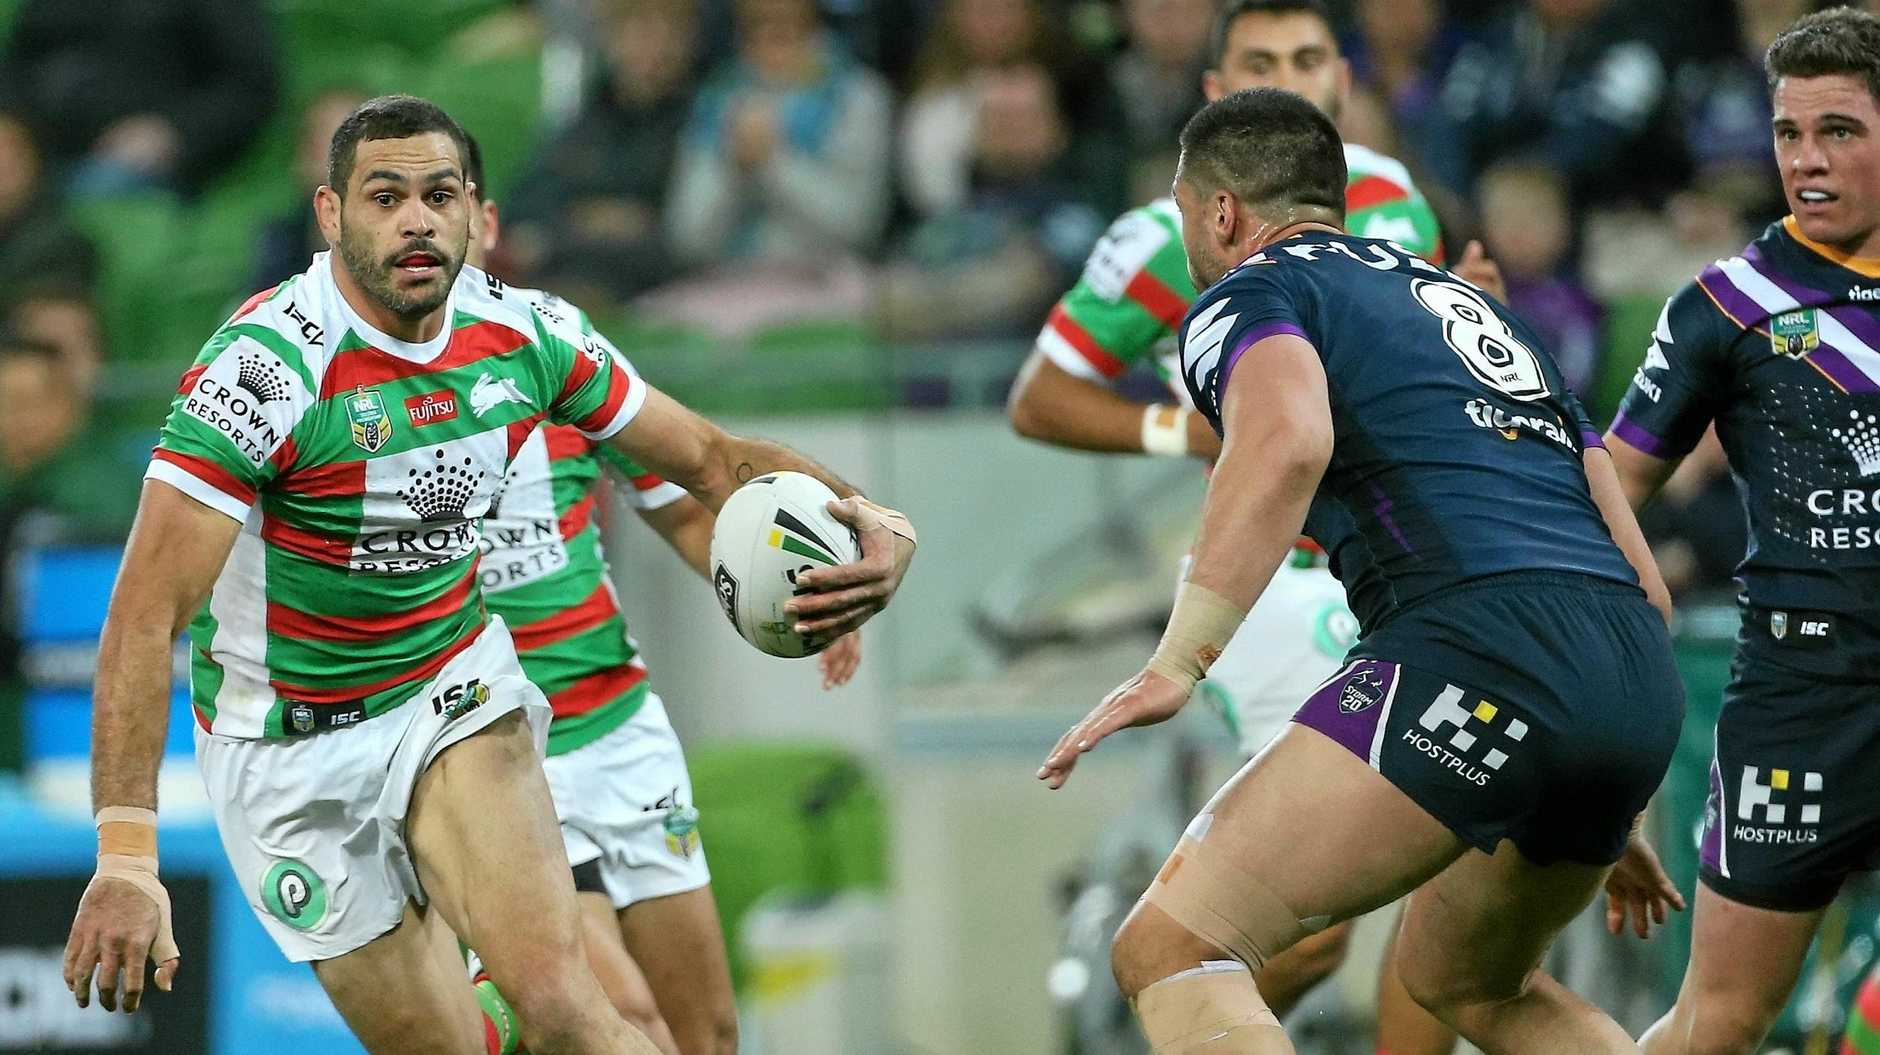 Greg Inglis of the Rabbitohs under pressure from Jesse Bromwich of the Storm during the Qualifying Final between the Melbourne Storm and the South Sydney Rabbitohs in Week 1 of the NRL Finals Series at AAMI Park in Melbourne, Friday, September 7, 2018. (AAP Image/Hamish Blair) NO ARCHIVING, EDITORIAL USE ONLY